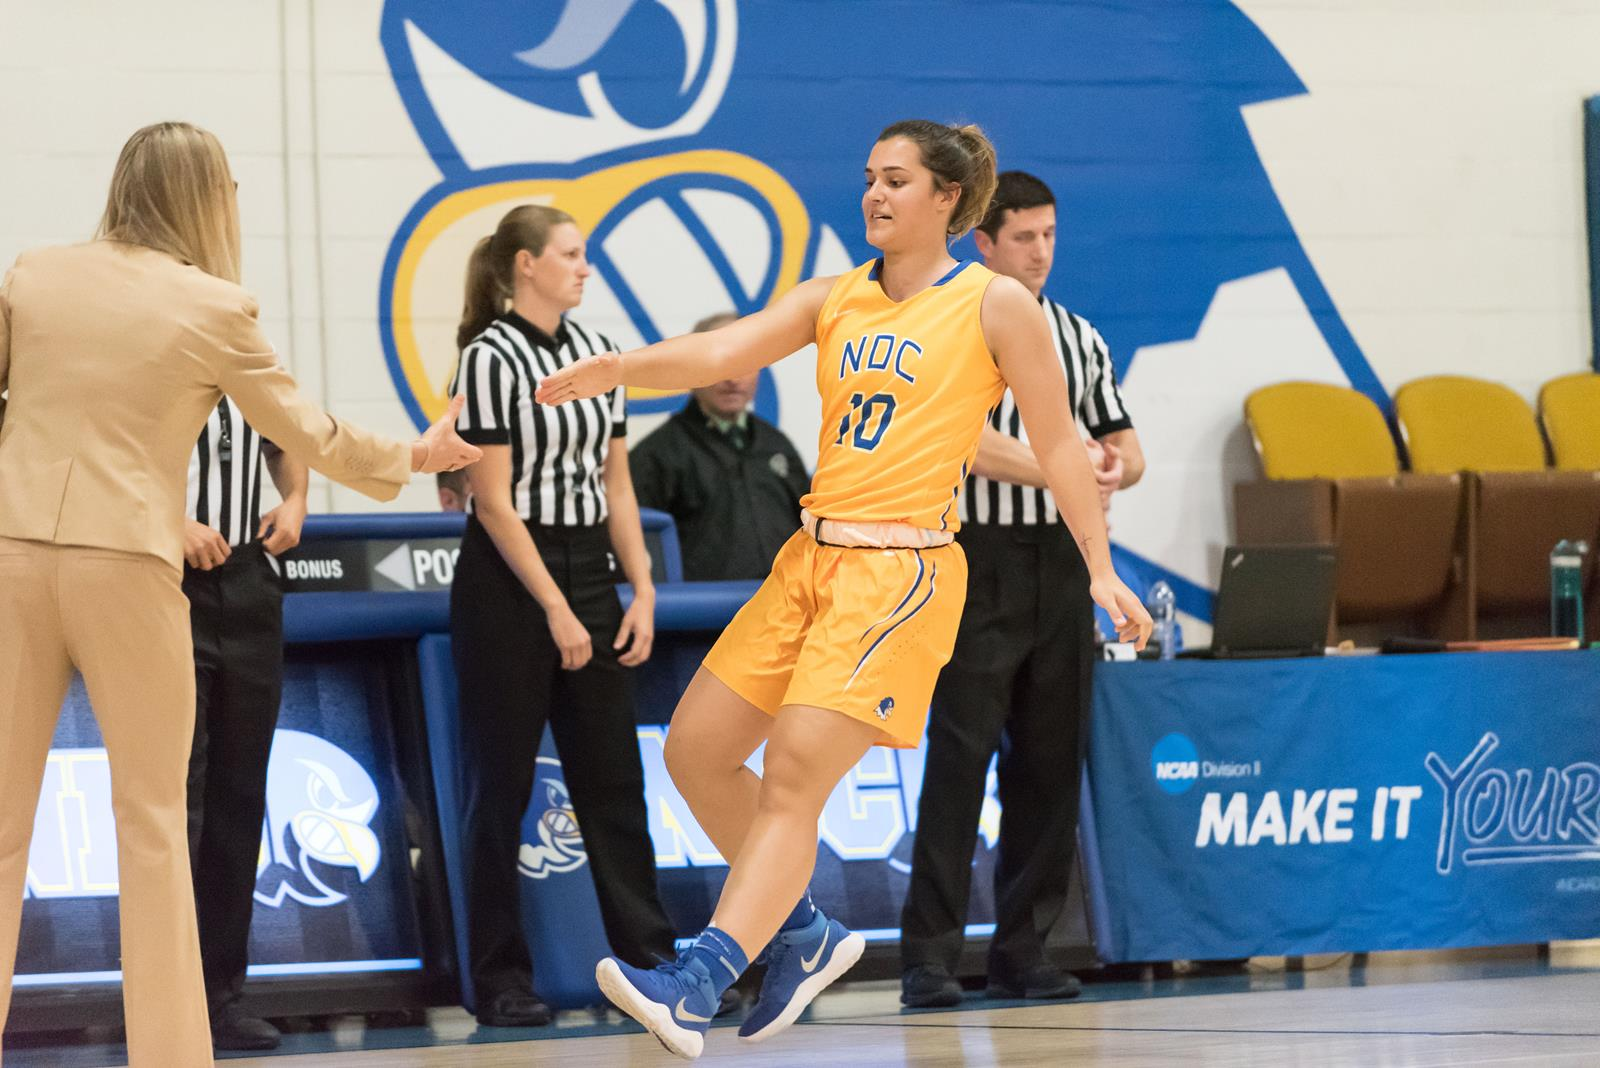 Maggie King Women S Basketball Notre Dame College Athletics